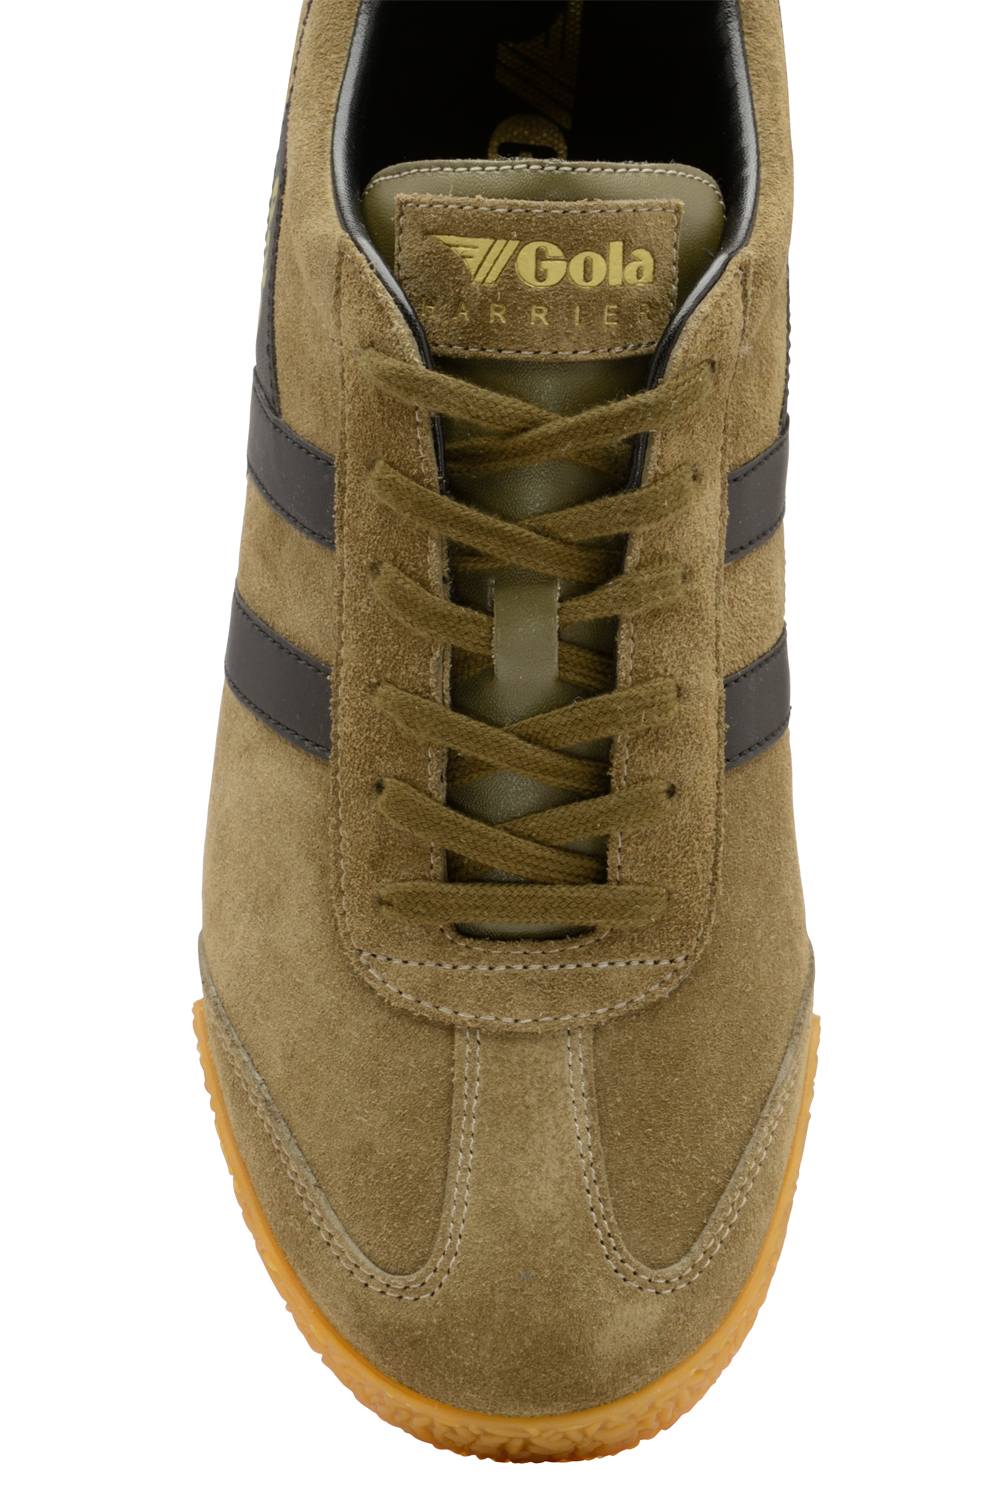 thumbnail 8 - Gola Harrier Suede Classic Vintage Lace-Up Sneakers Mens Trainers Low Top Shoes